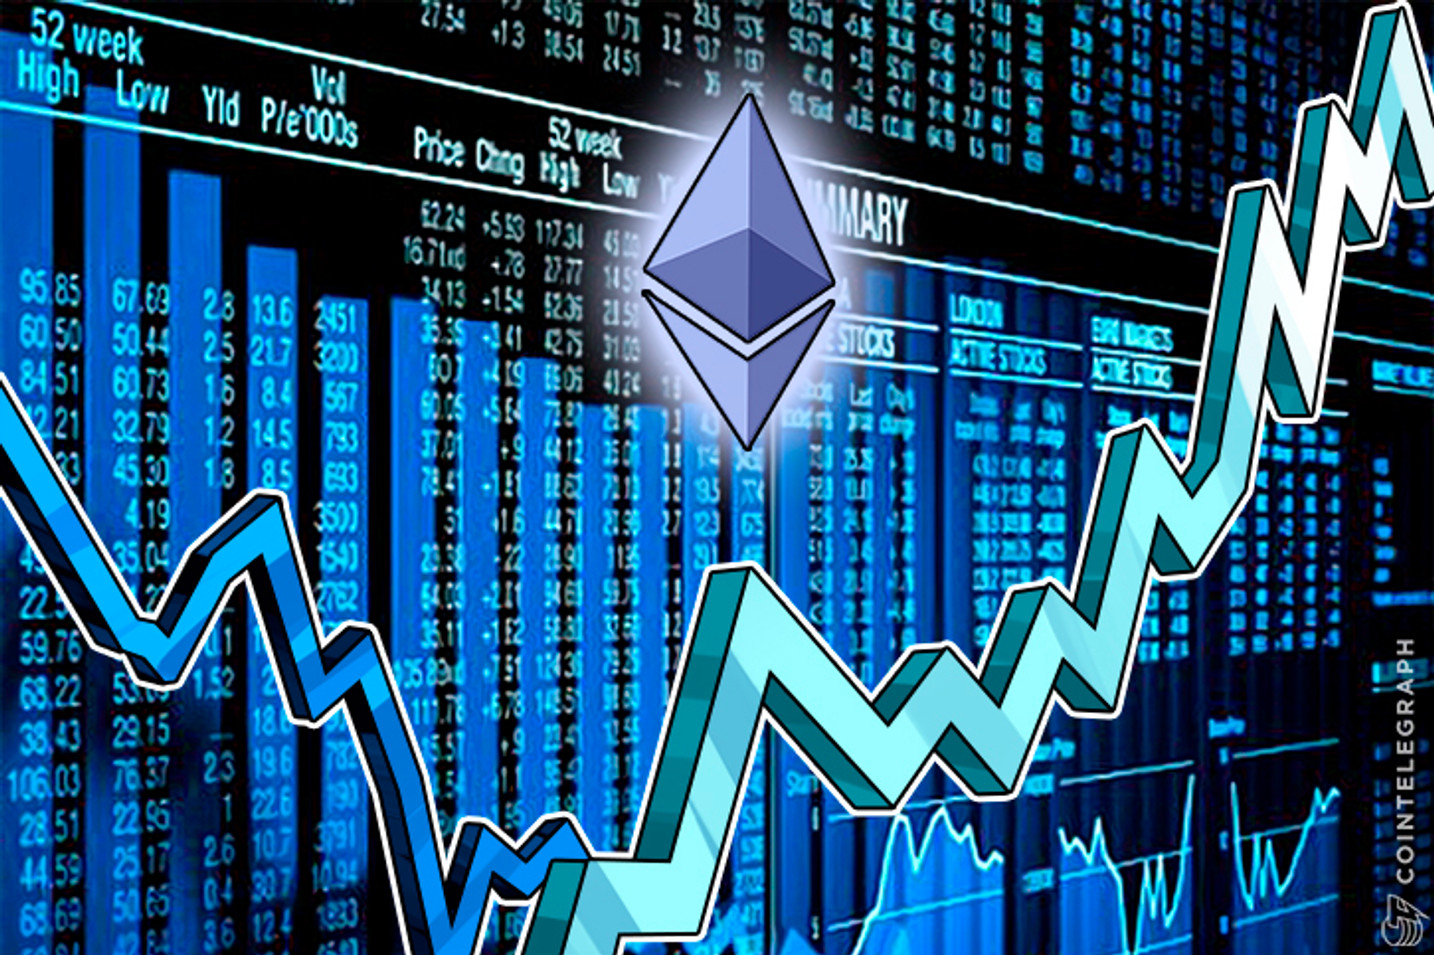 Ethereum Price Analysis: April 11 - 18